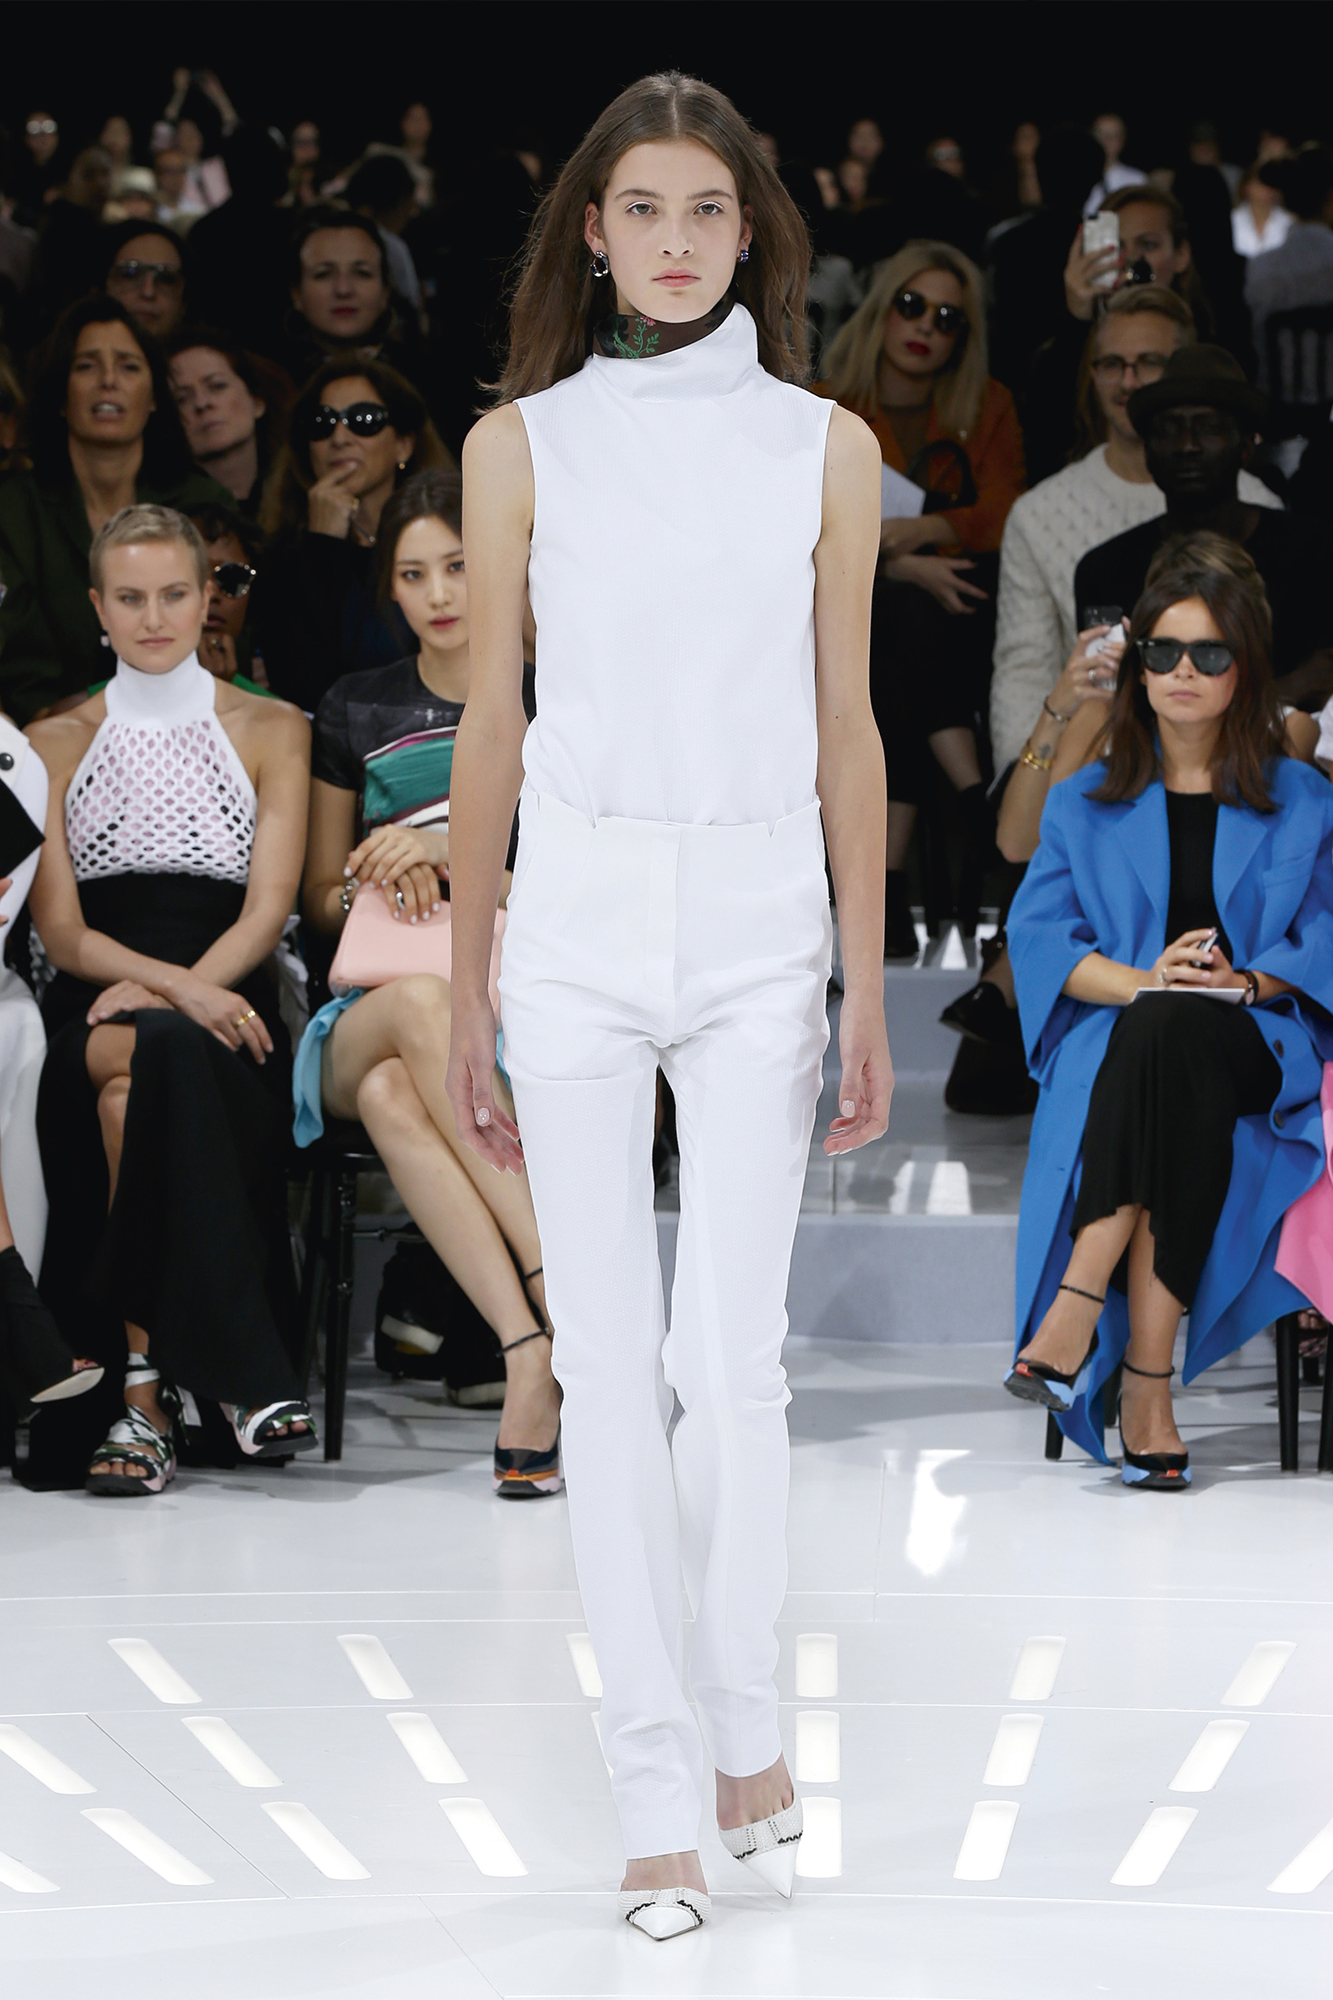 Christian Dior Haute Couture Spring-Summer Ready To Wear Dresses & Accessories Collection 2015-16 (3)